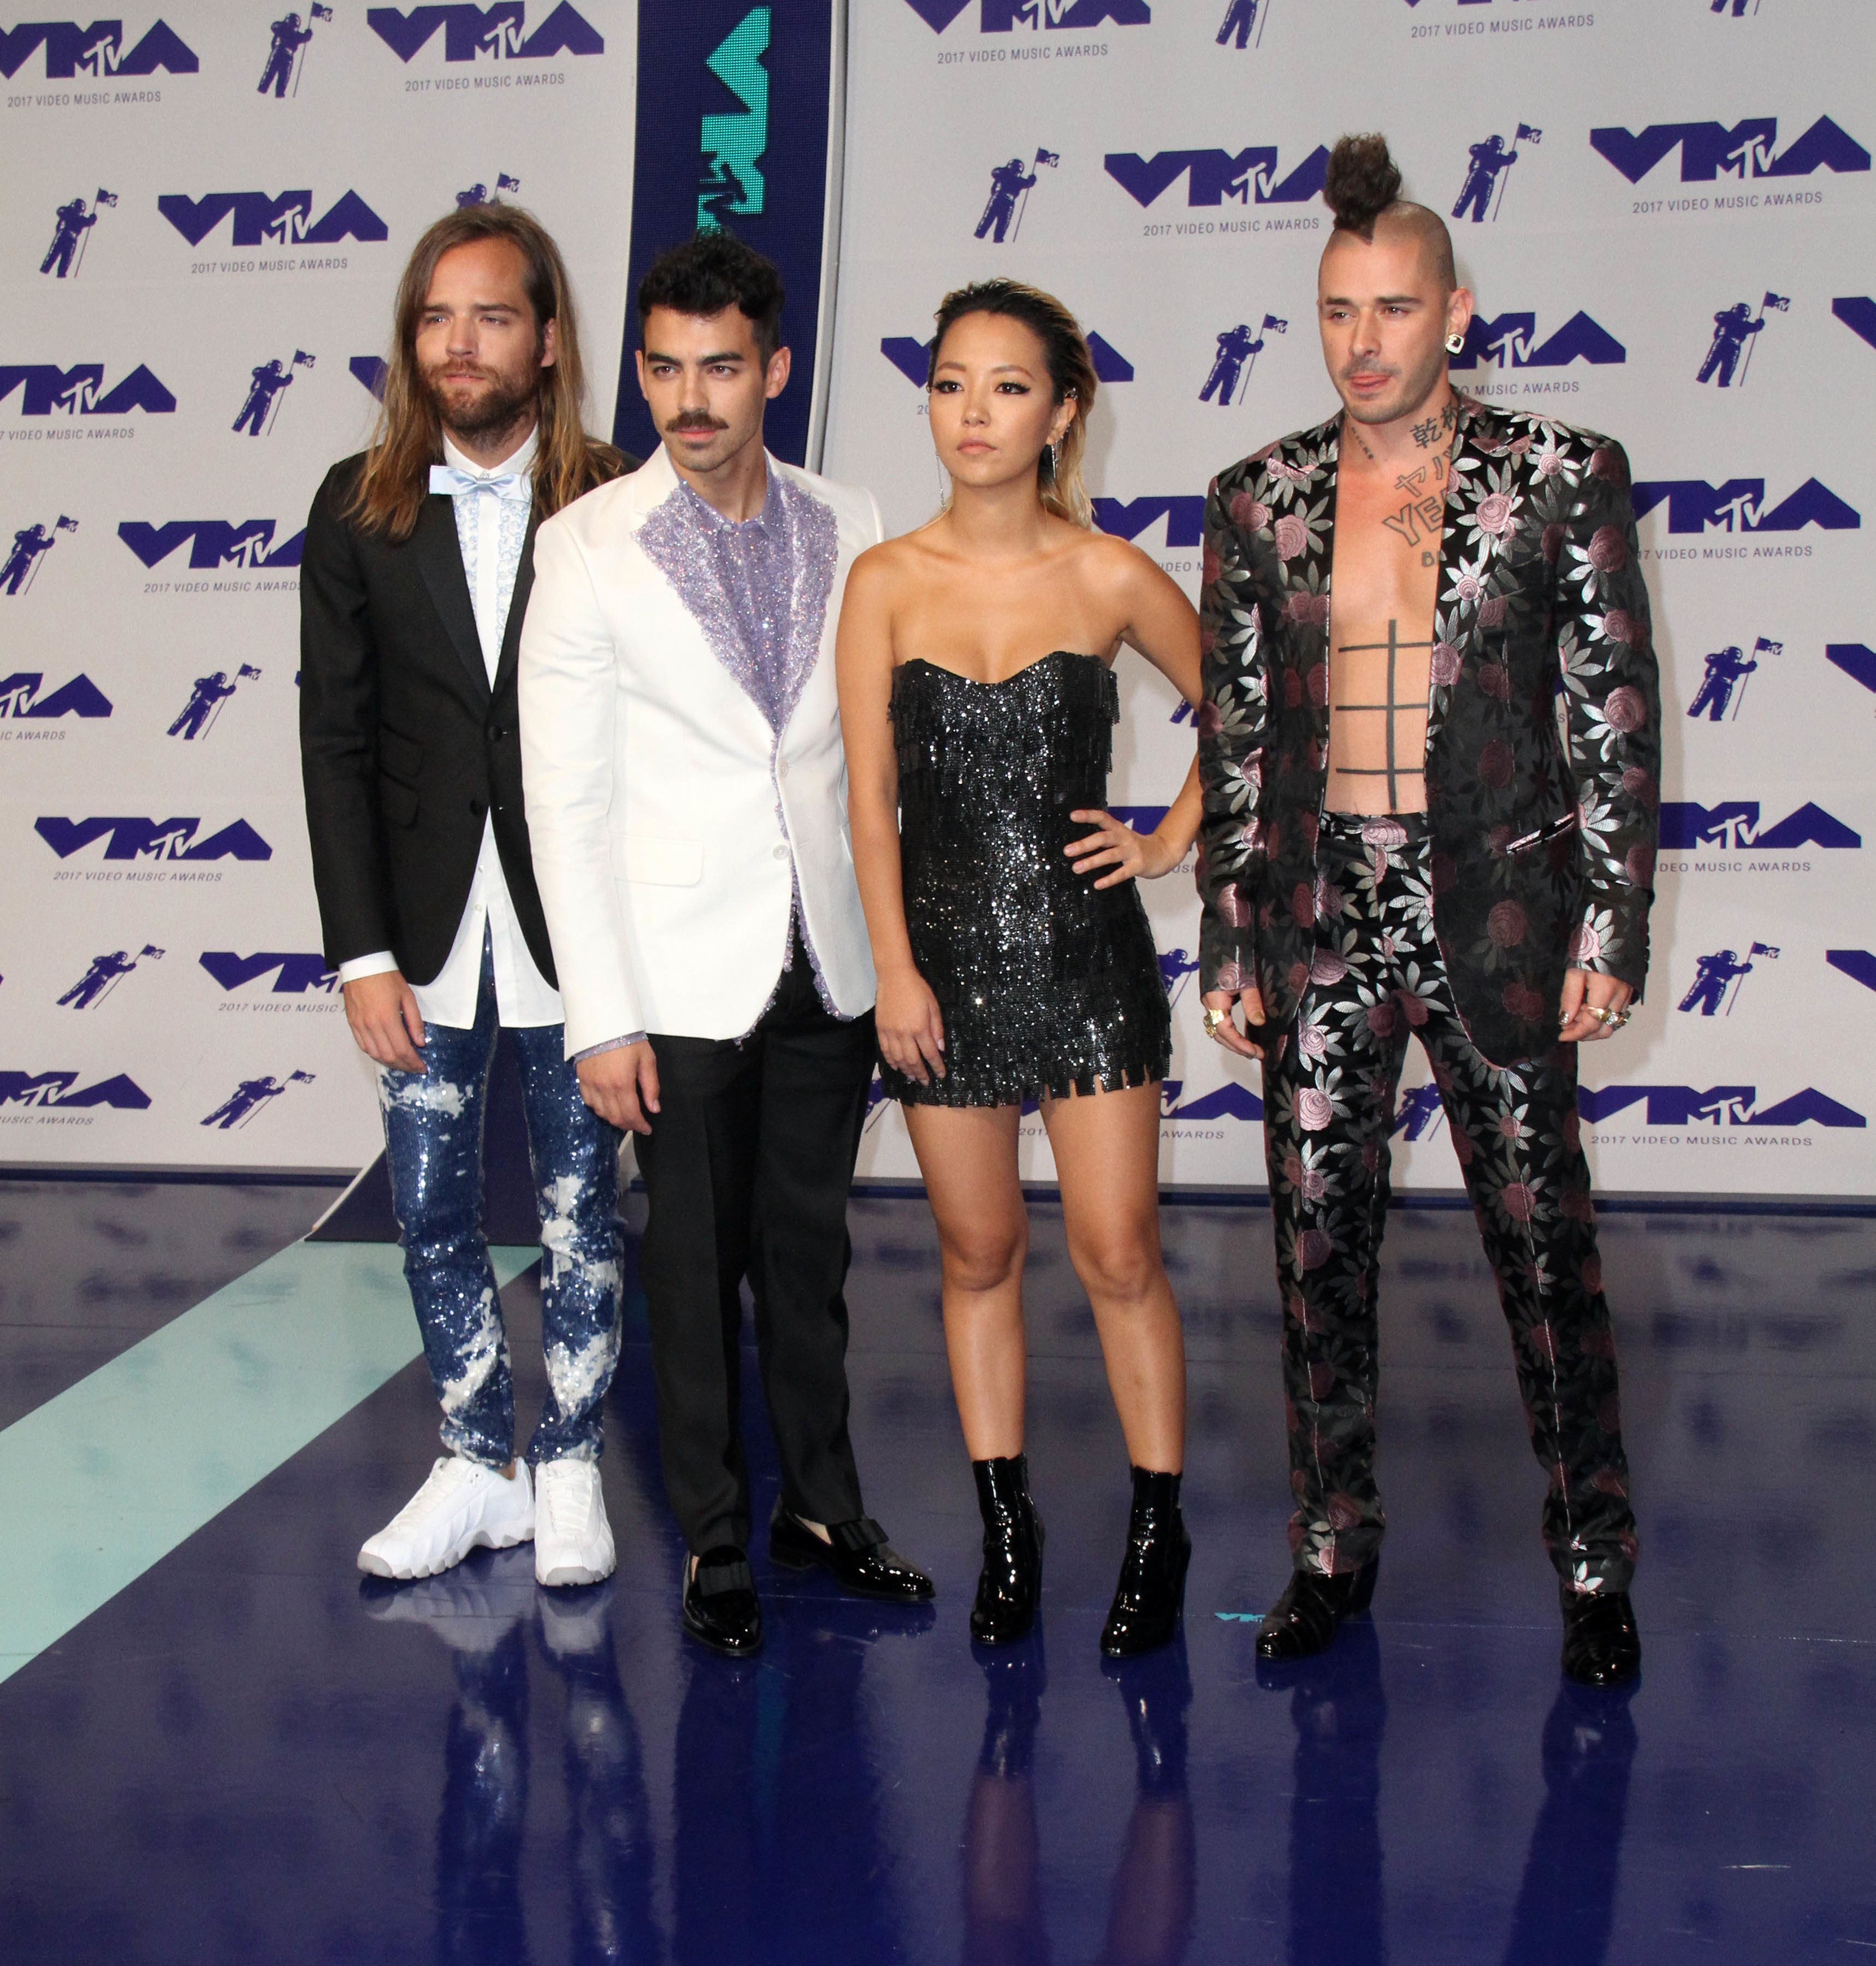 MTV Video Music Awards (VMA) 2017 Arrivals held at the Forum in Inglewood, California.  Featuring: Jack Lawless, Joe Jonas, JinJoo Lee, Cole Whittle of the band DNCE Where: Los Angeles, California, United States When: 26 Aug 2017 Credit: Adriana M. Barraza/WENN.com